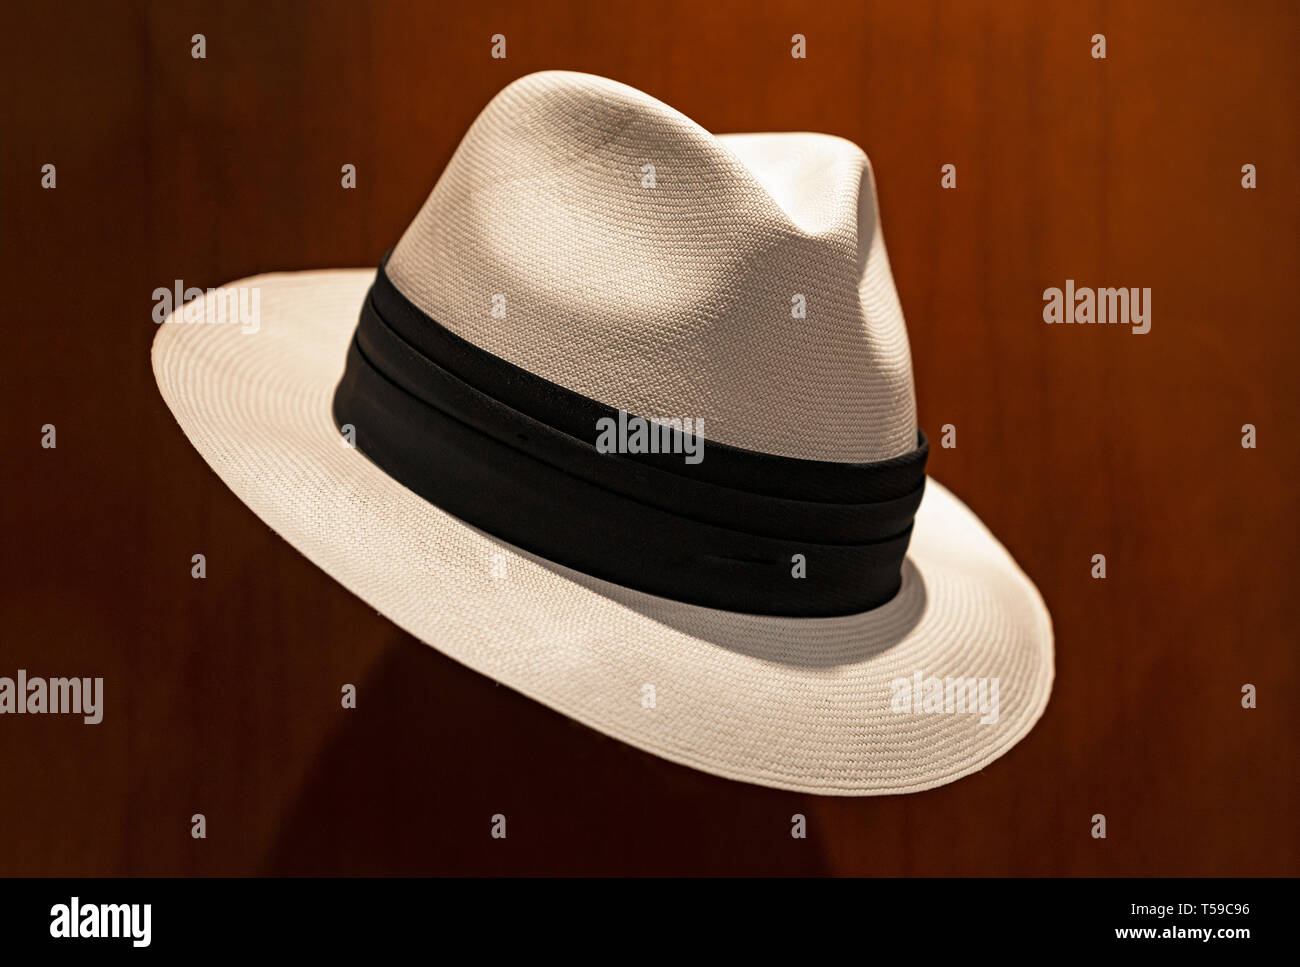 61cd429c A Panama hat or traditional brimmed straw hat made of the Toquilla palm, is  on